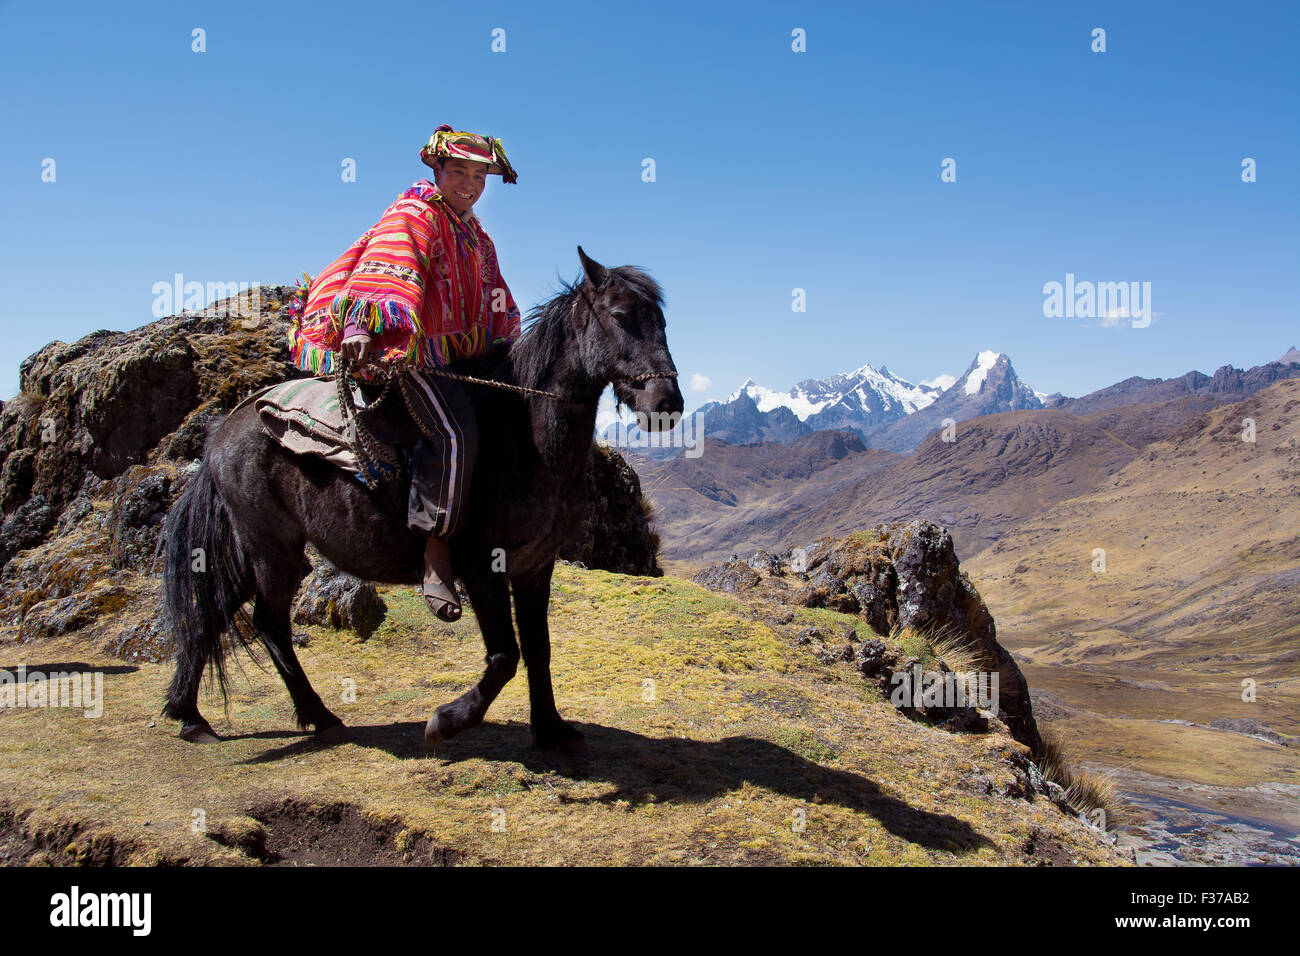 Indio mountain guide with colorful poncho riding on horseback, in the mountains, Andes, Cusco Province, Peru - Stock Image